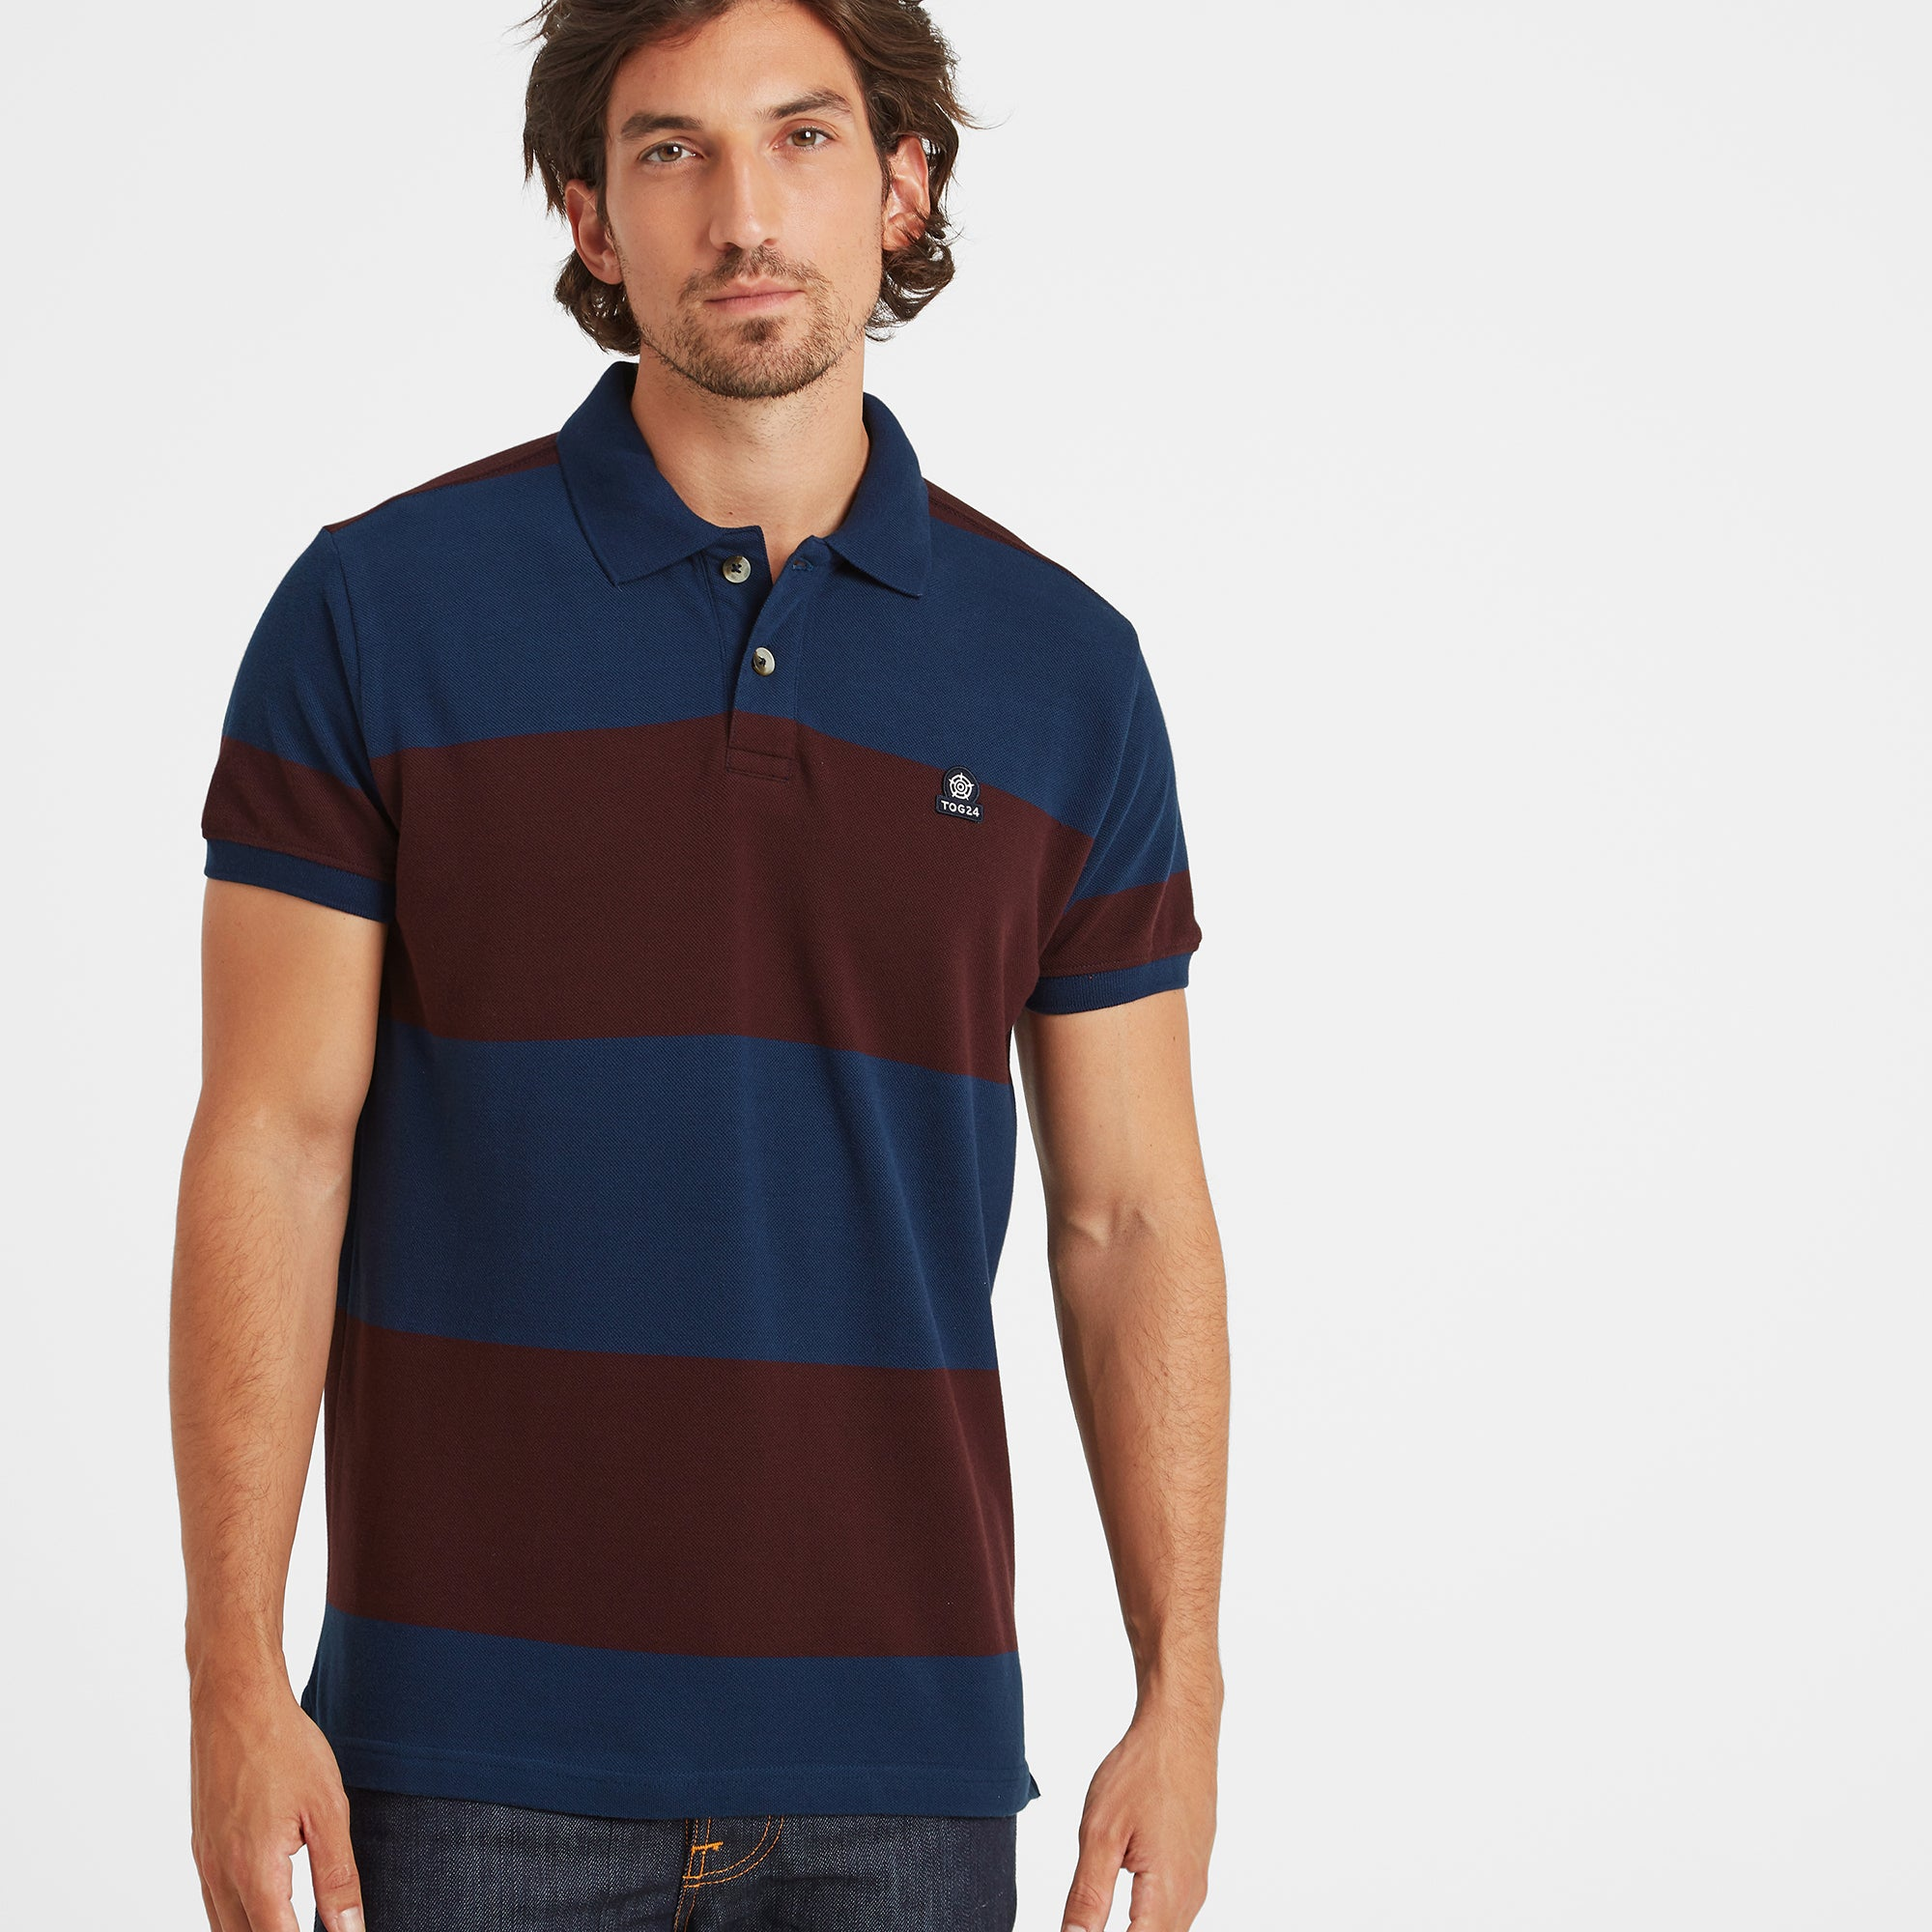 Seacroft Mens Pique Stripe Polo - Naval Blue Stripe